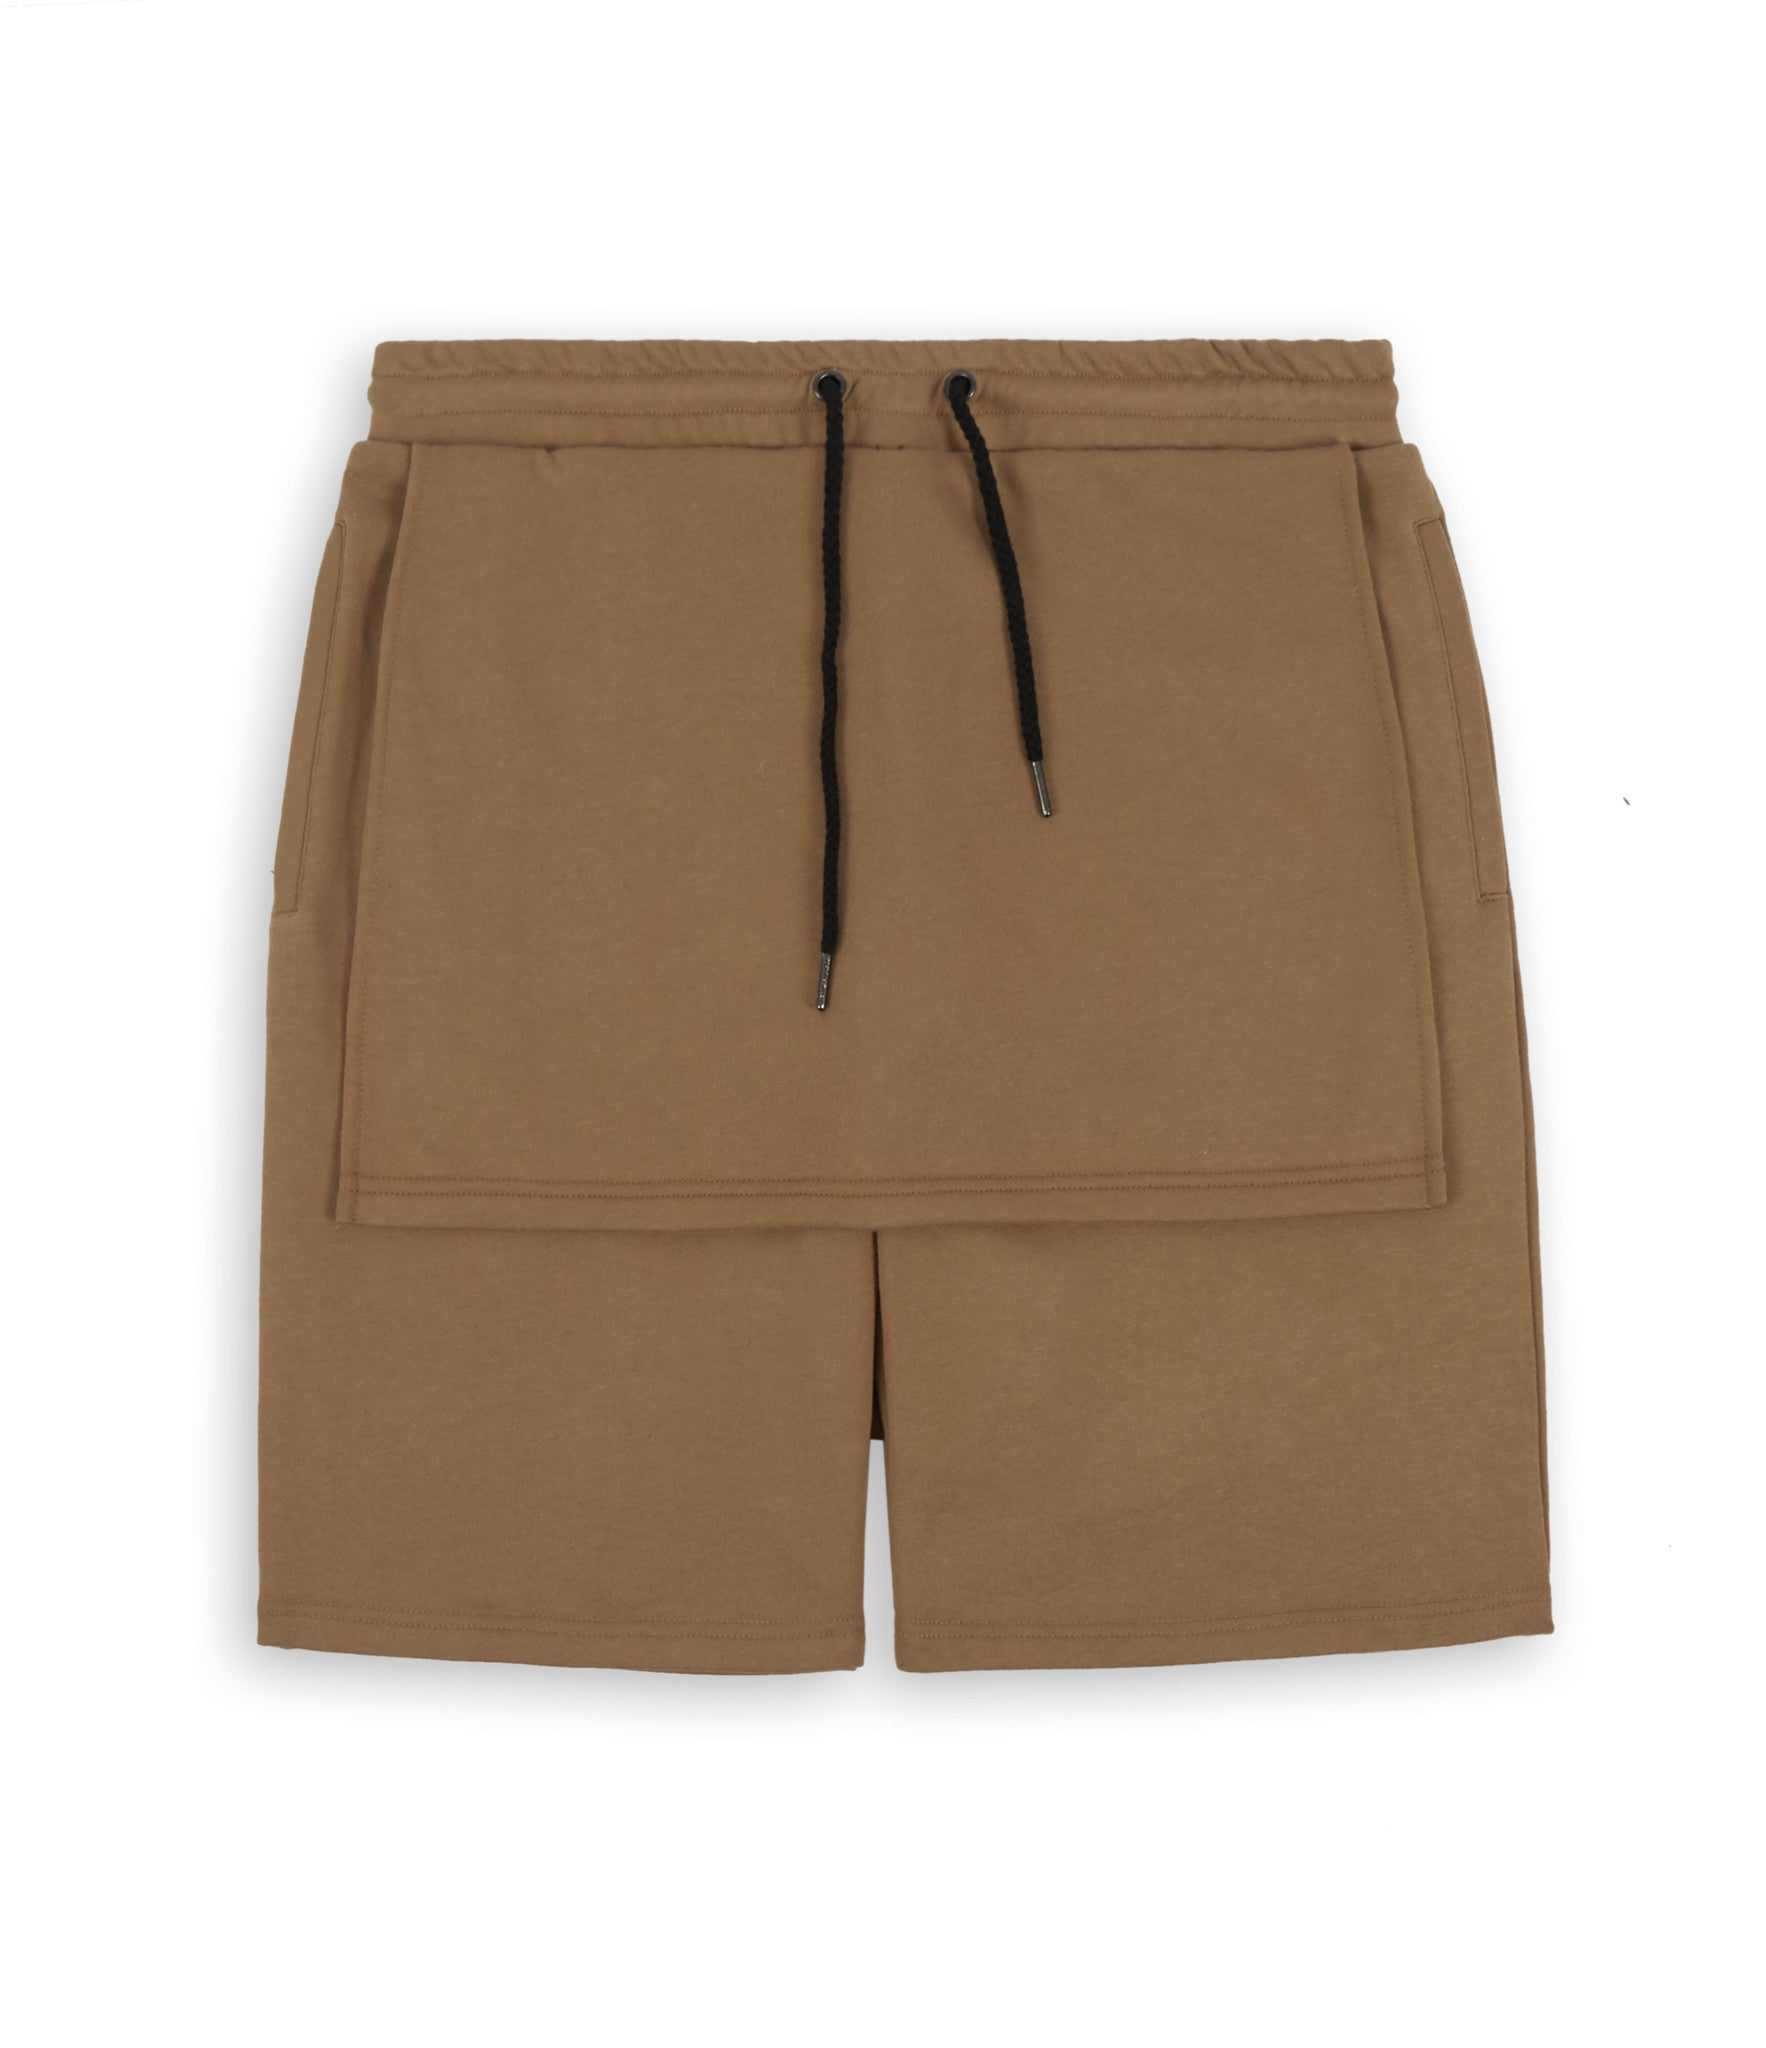 SR054 Layered Shorts - Tan - underated london - underatedco - 1